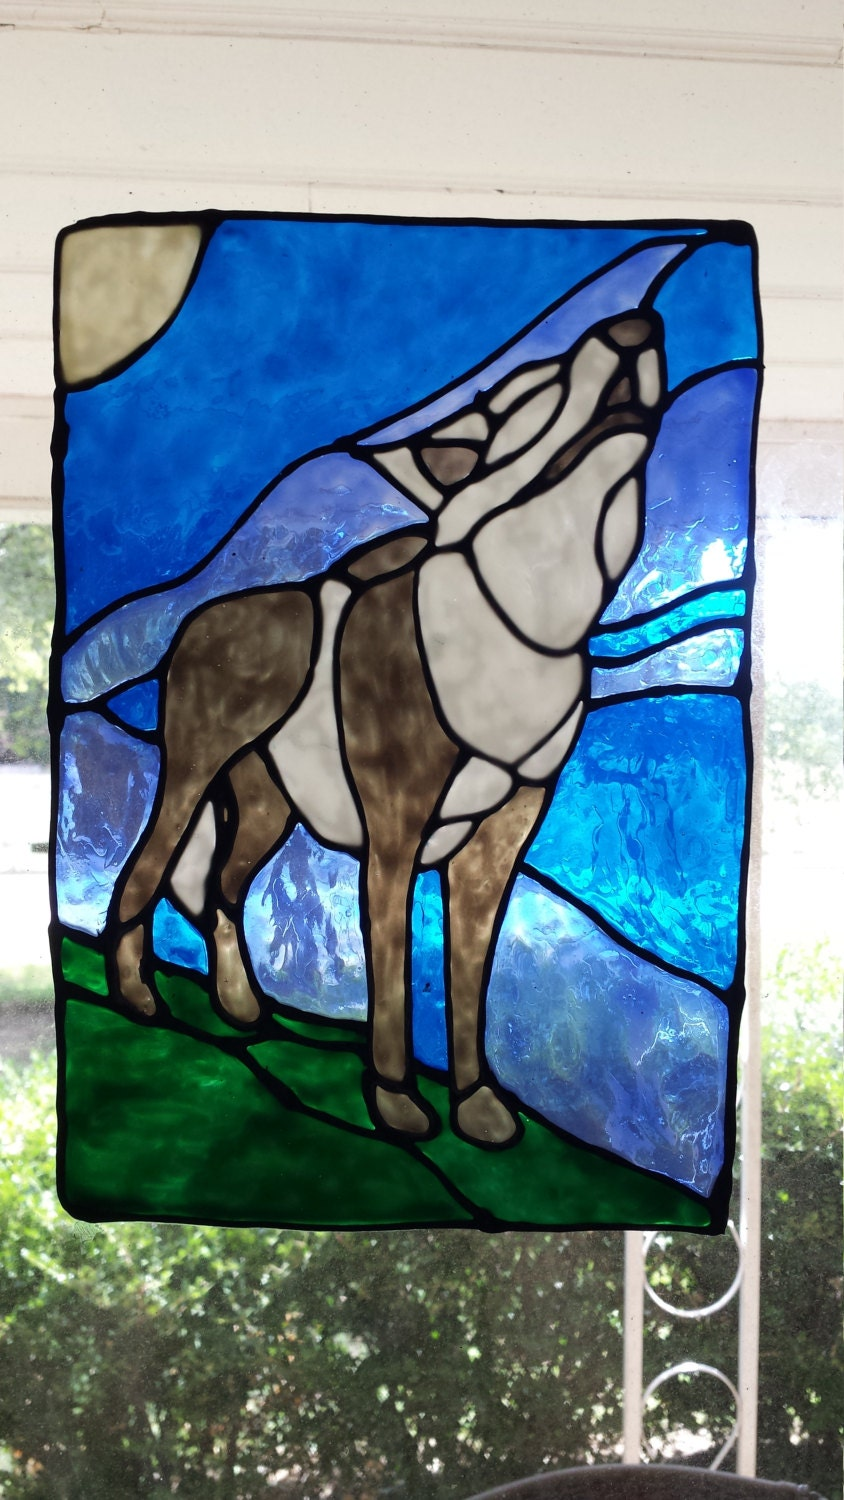 howling wolf stained glass window cling. Black Bedroom Furniture Sets. Home Design Ideas